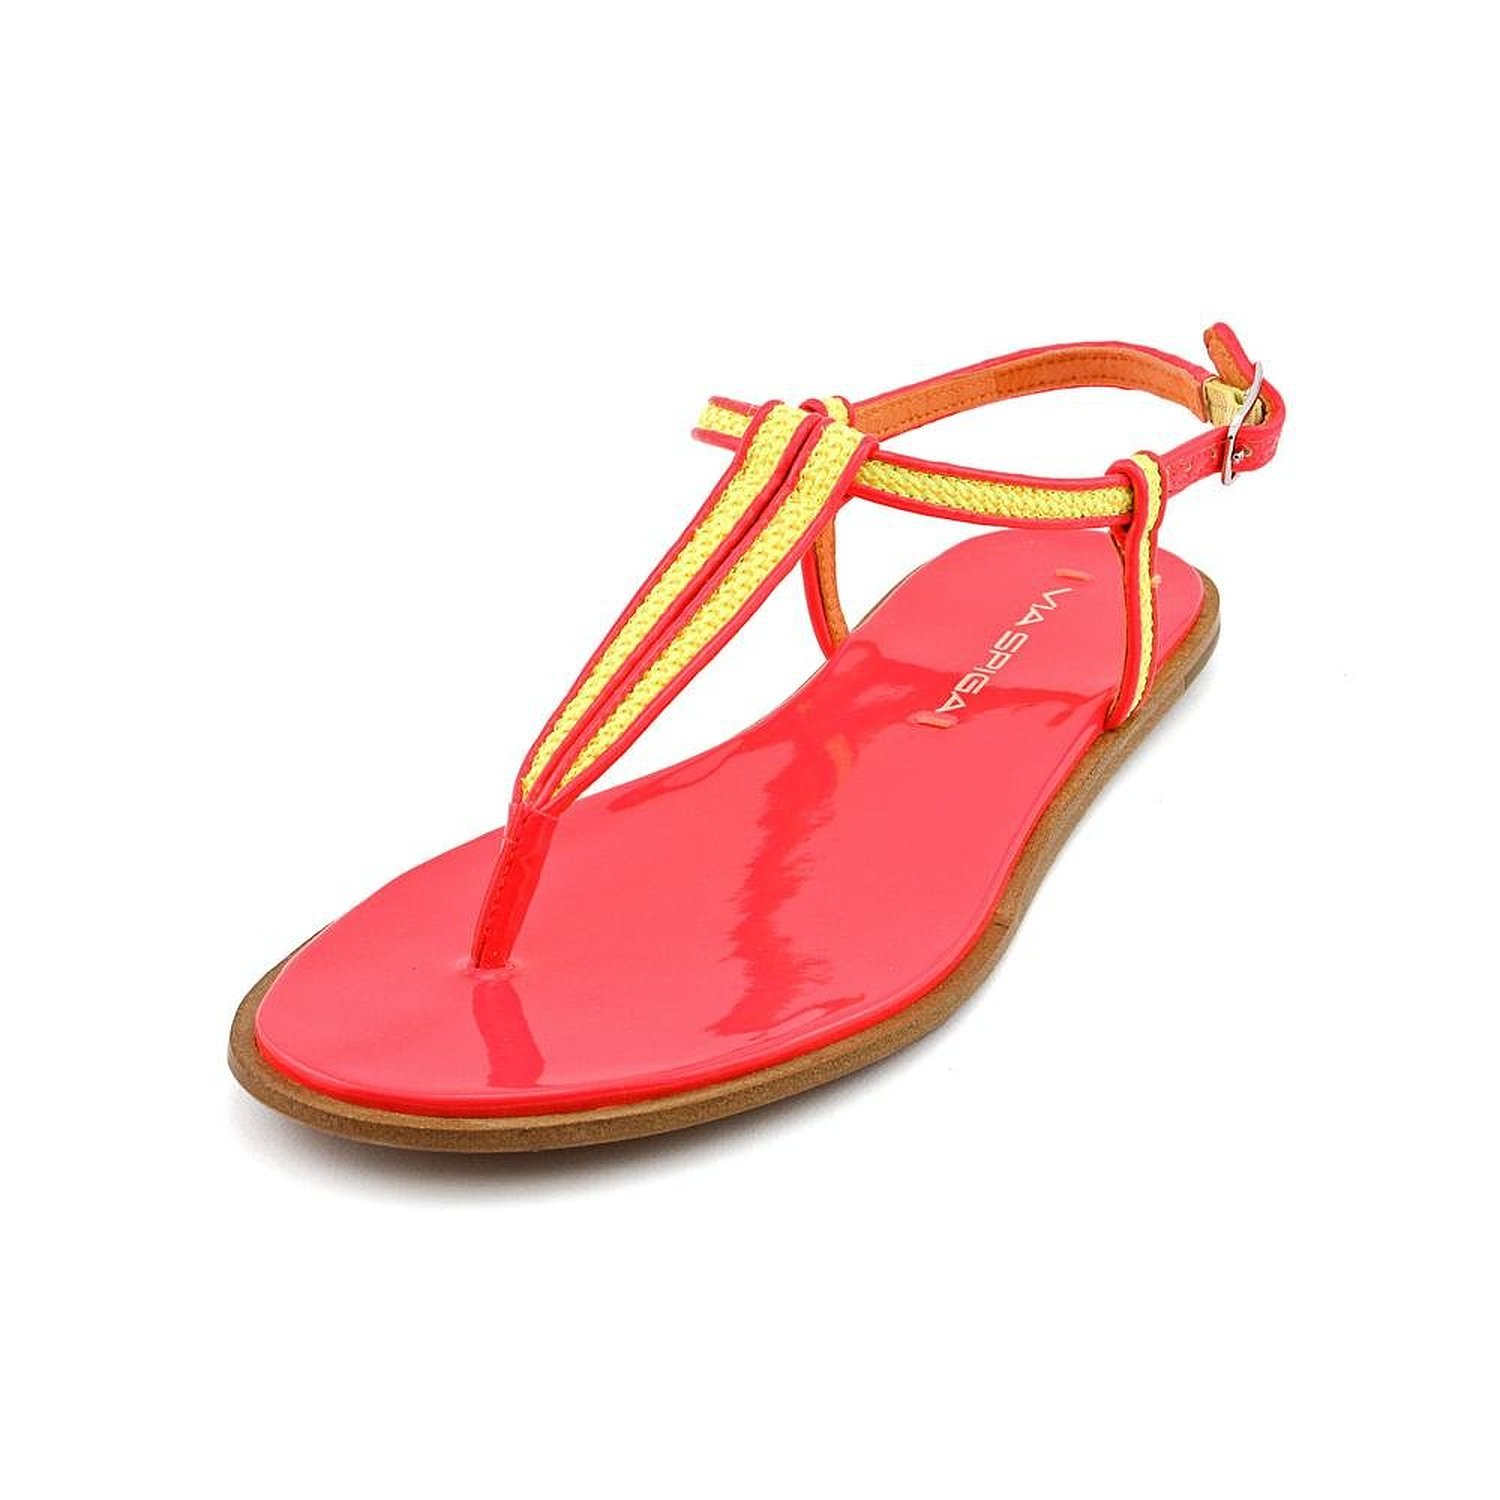 Amazon.com: via spiga cynna womens open toe fabric thongs sandals shoes: shoes